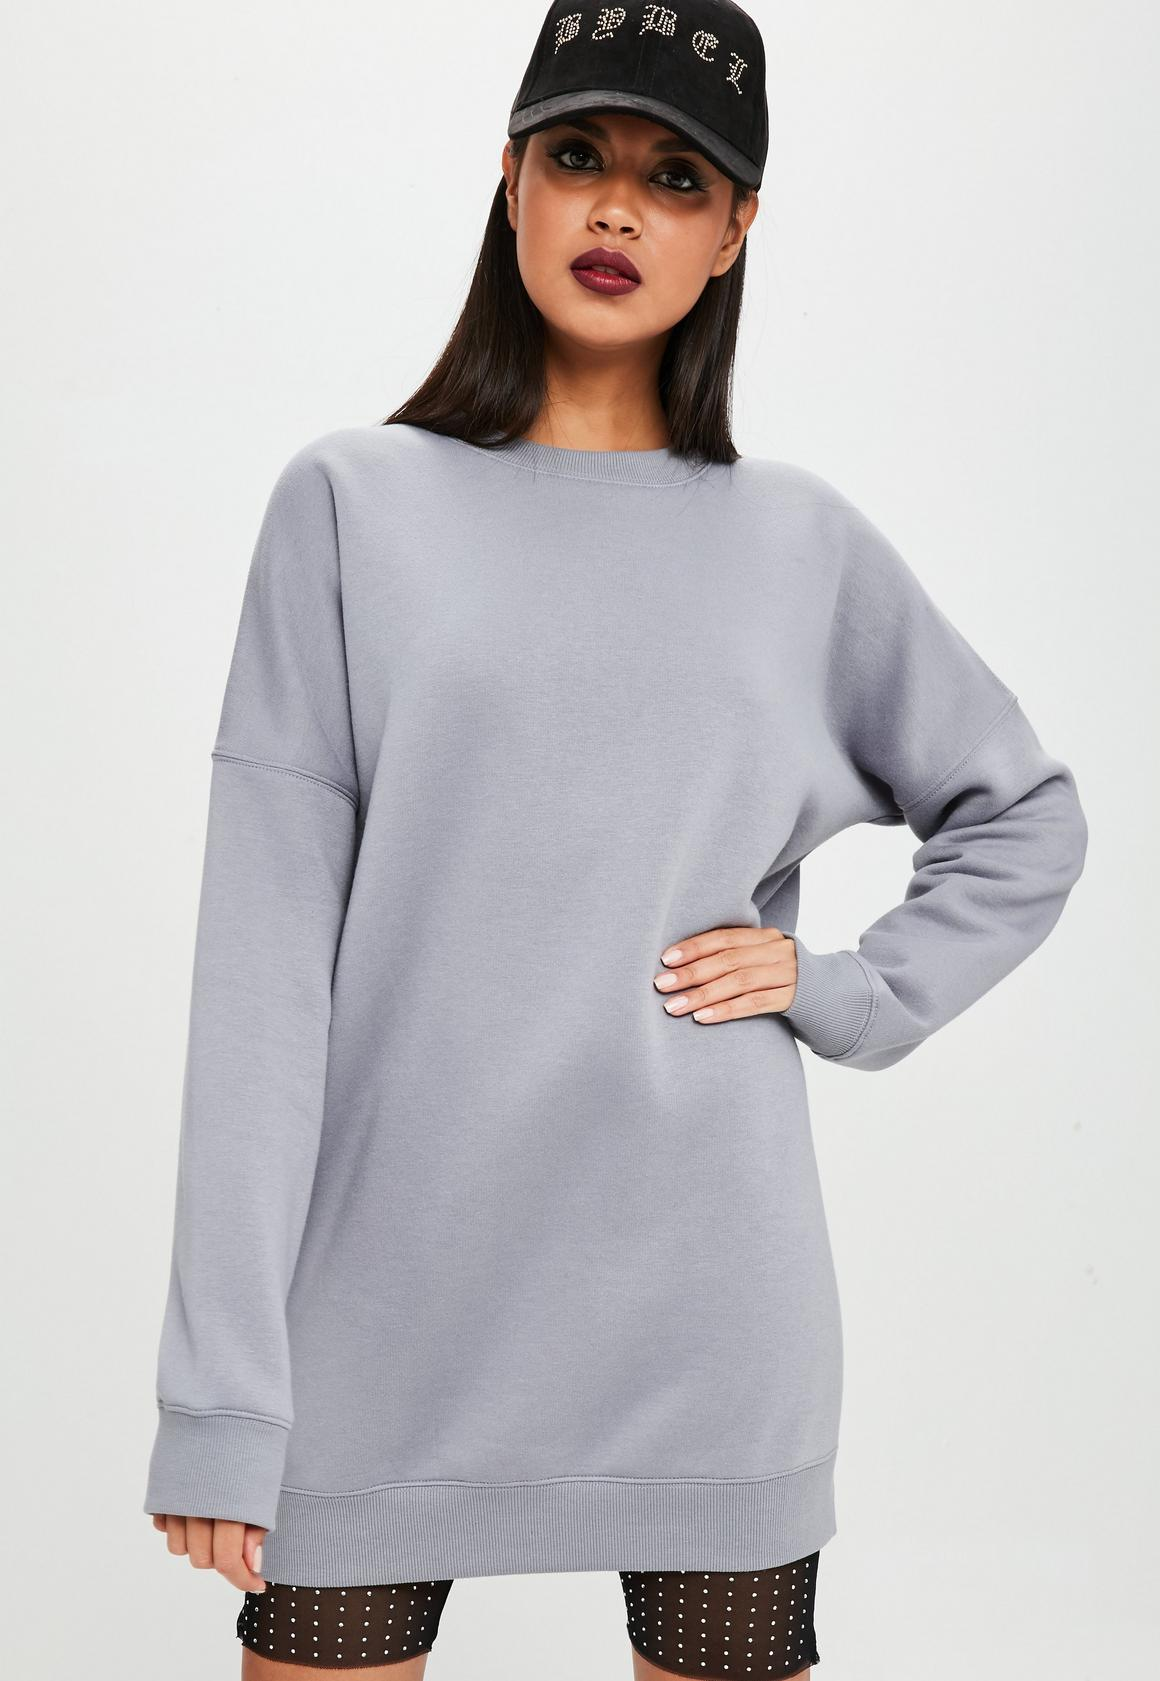 Carli Bybel x Missguided Gray Oversized Sweatshirt Dress | Missguided